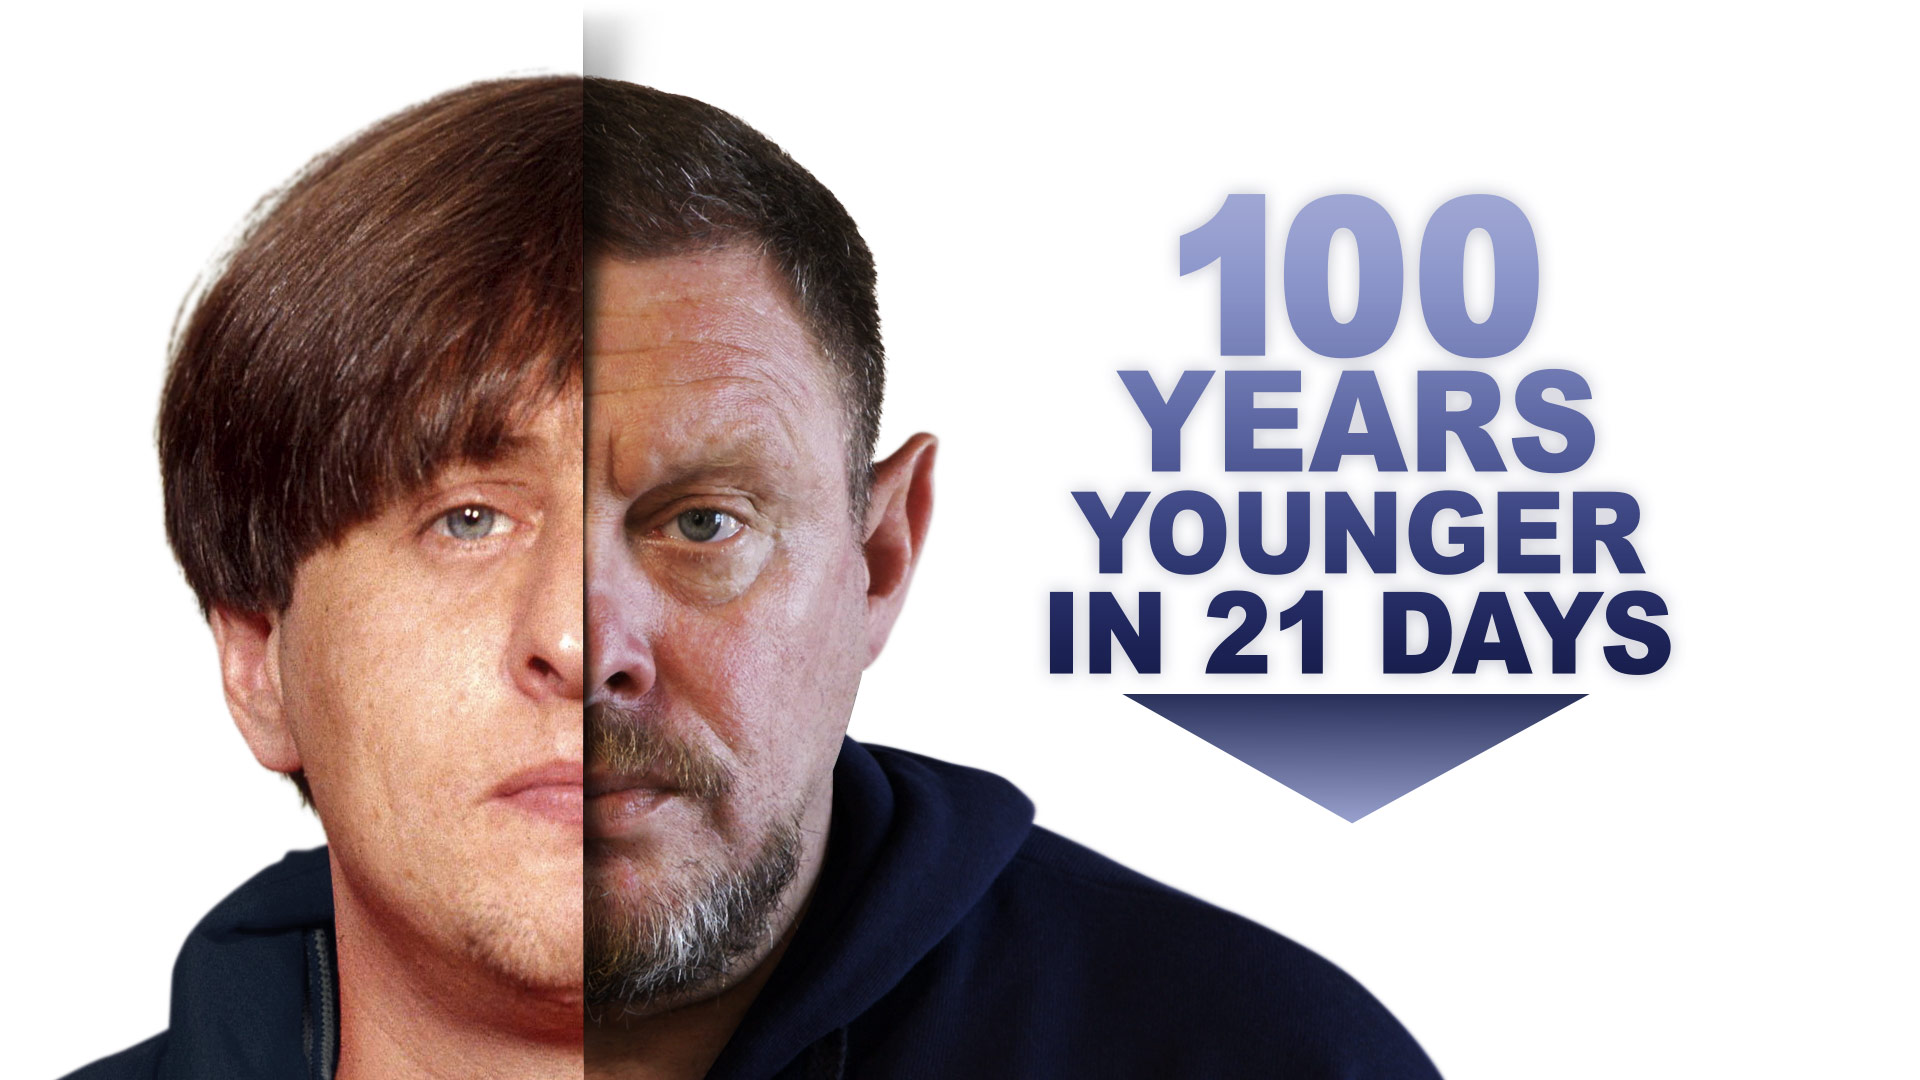 100 Years Younger in 21 Days ©Holey and Moley Ltd